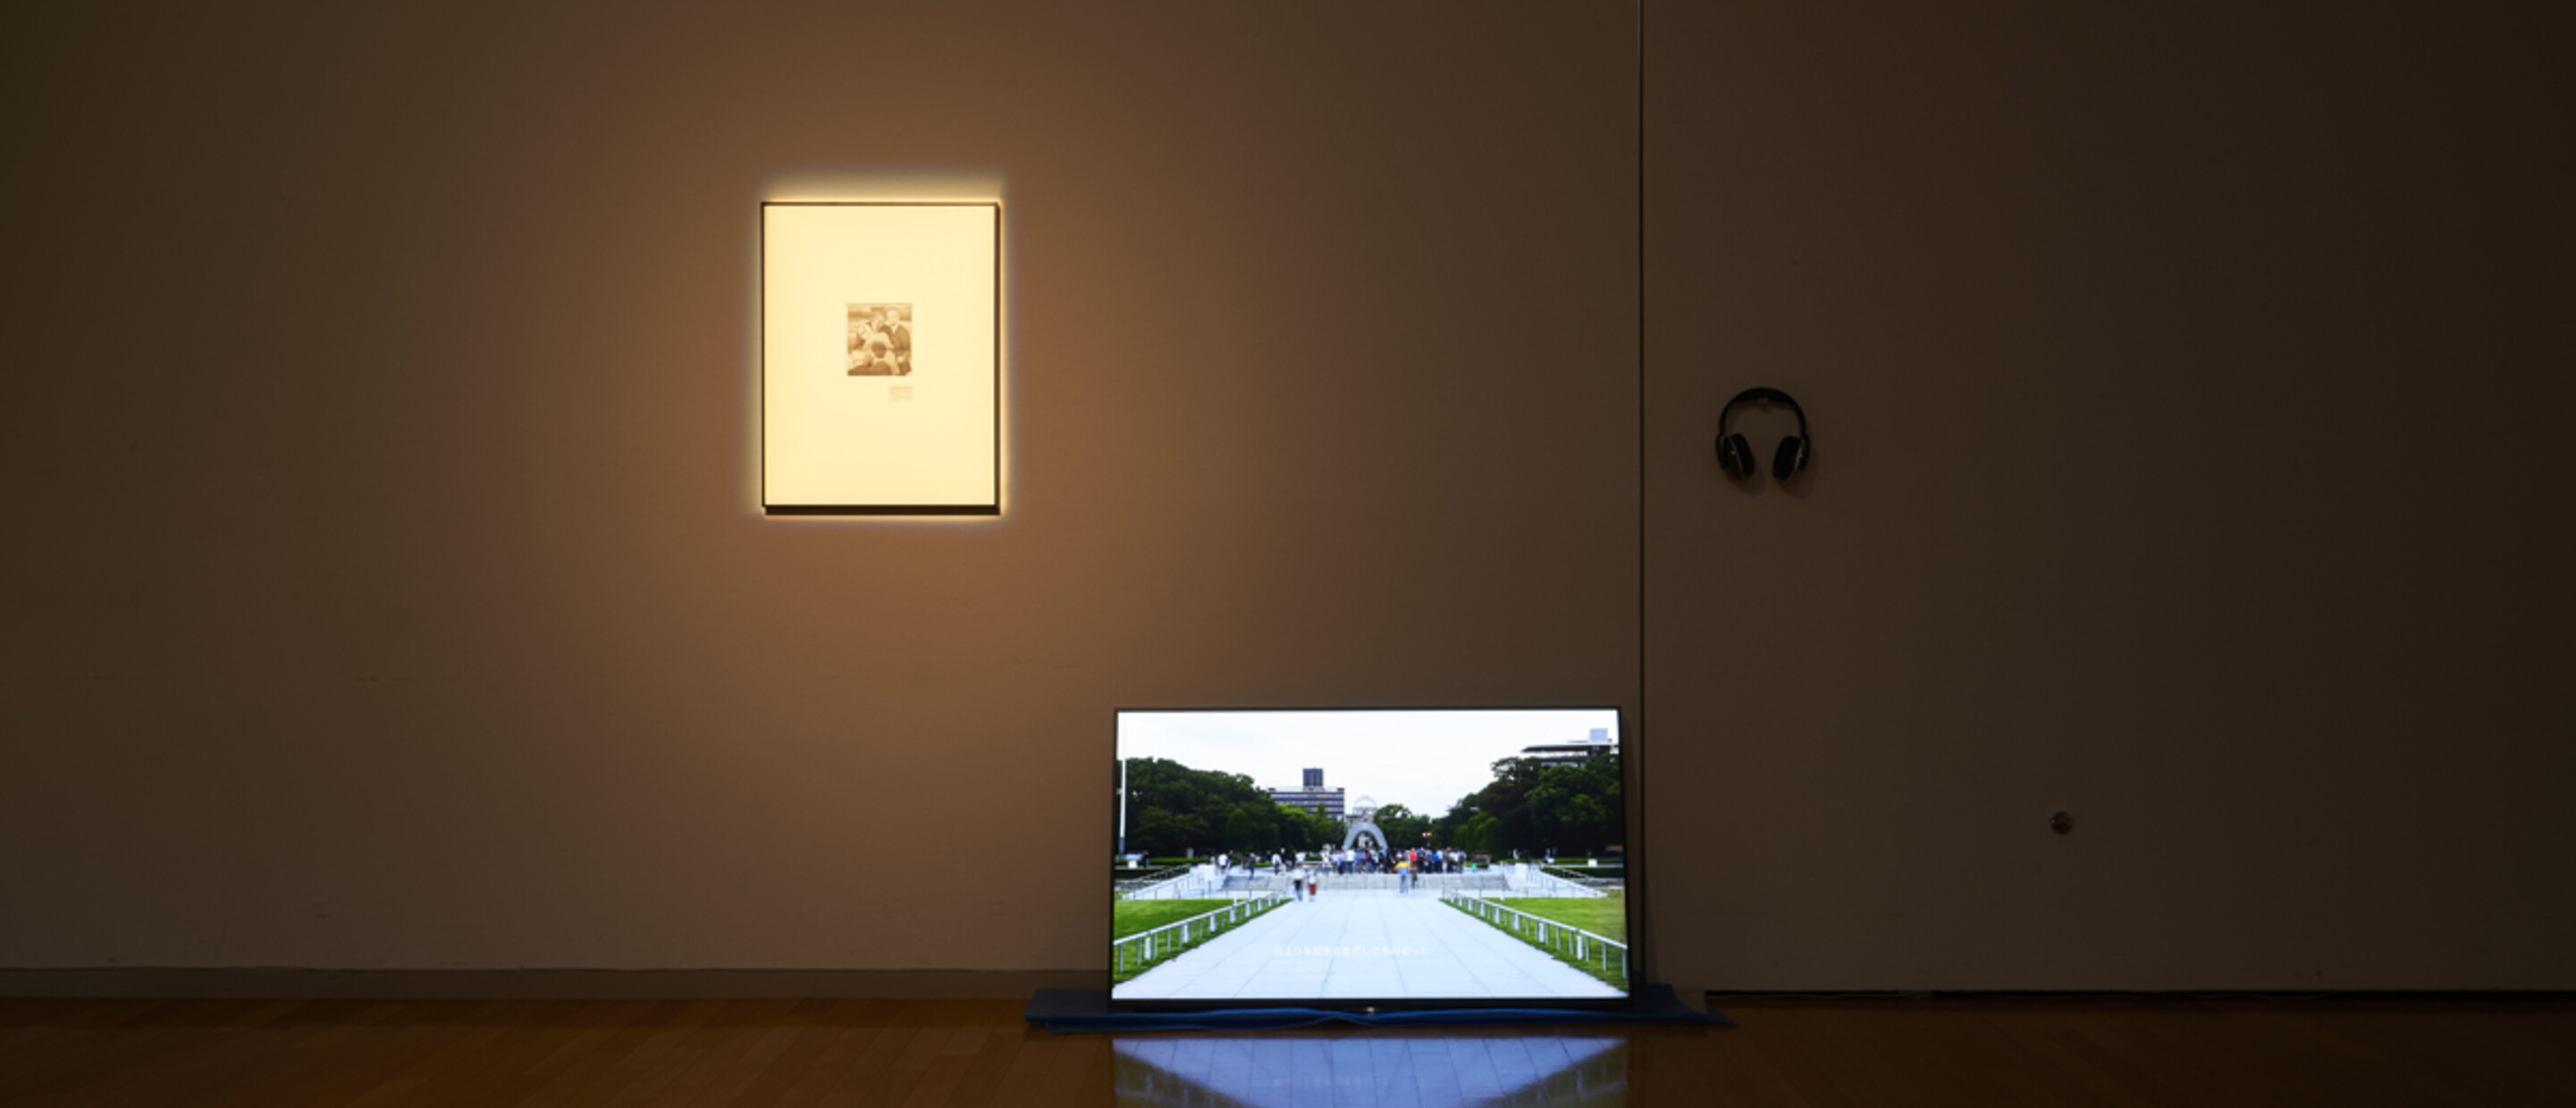 Photograph of installation with a television and framed photograph